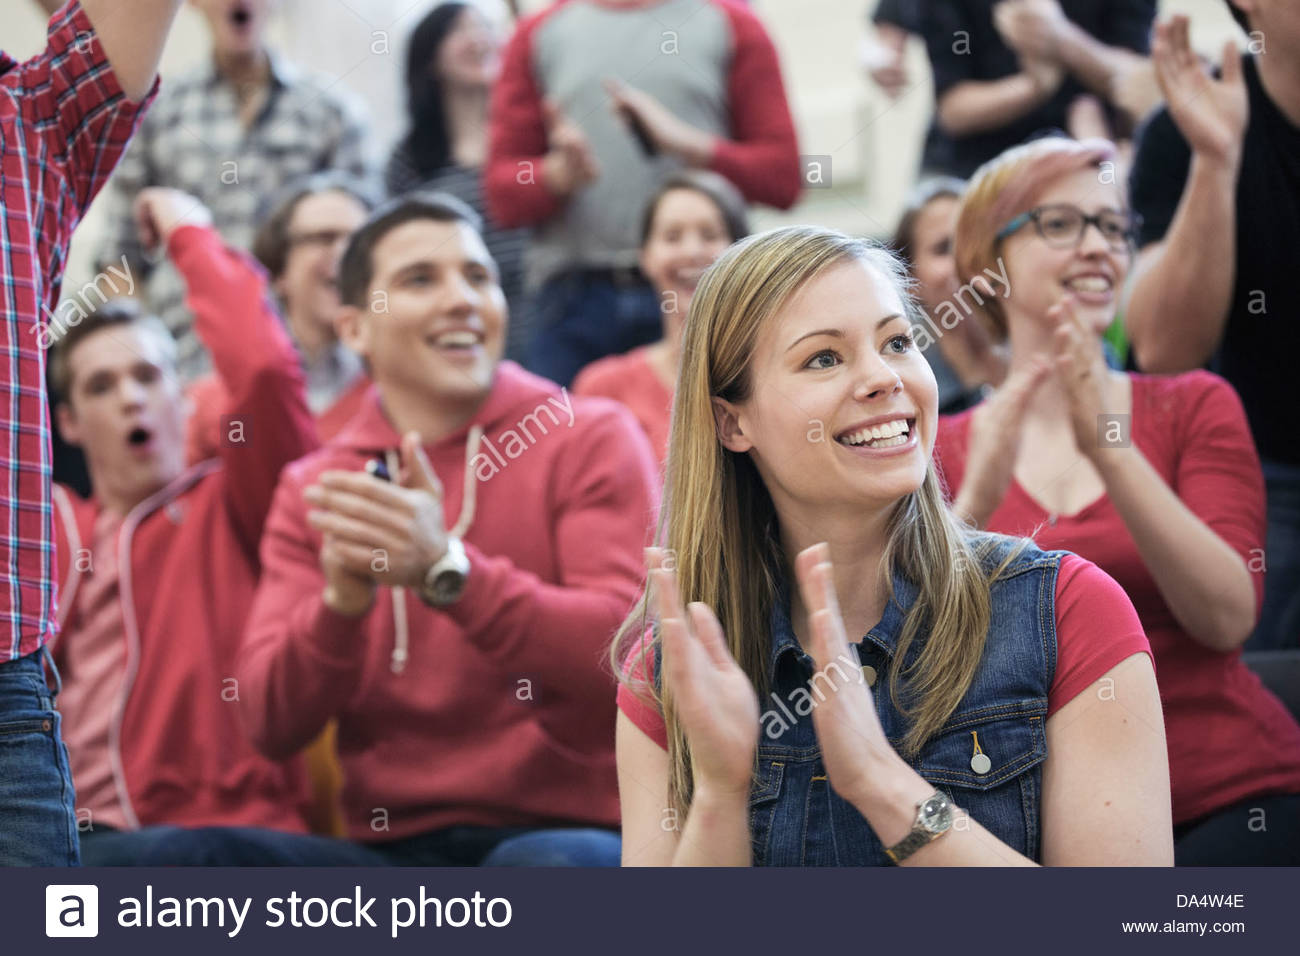 Female student clapping at college sporting event Stock Photo